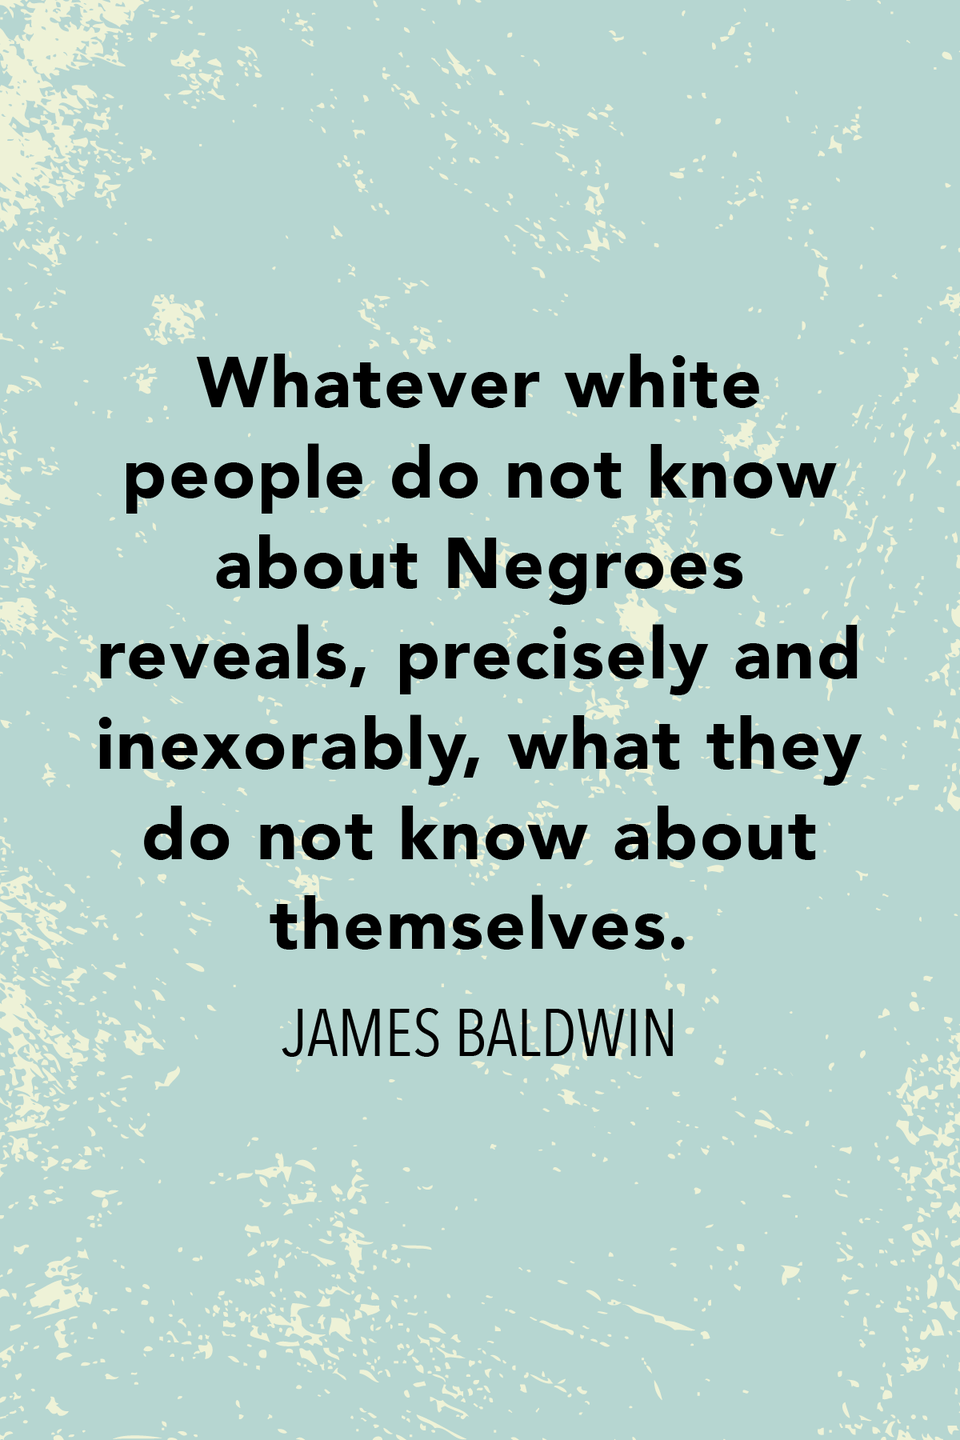 """<p>Baldwin wrote in <em>The Fire Next Time</em>, """"Whatever white people do not know about Negroes reveals, precisely and inexorably, what they do not know about themselves.""""</p>"""